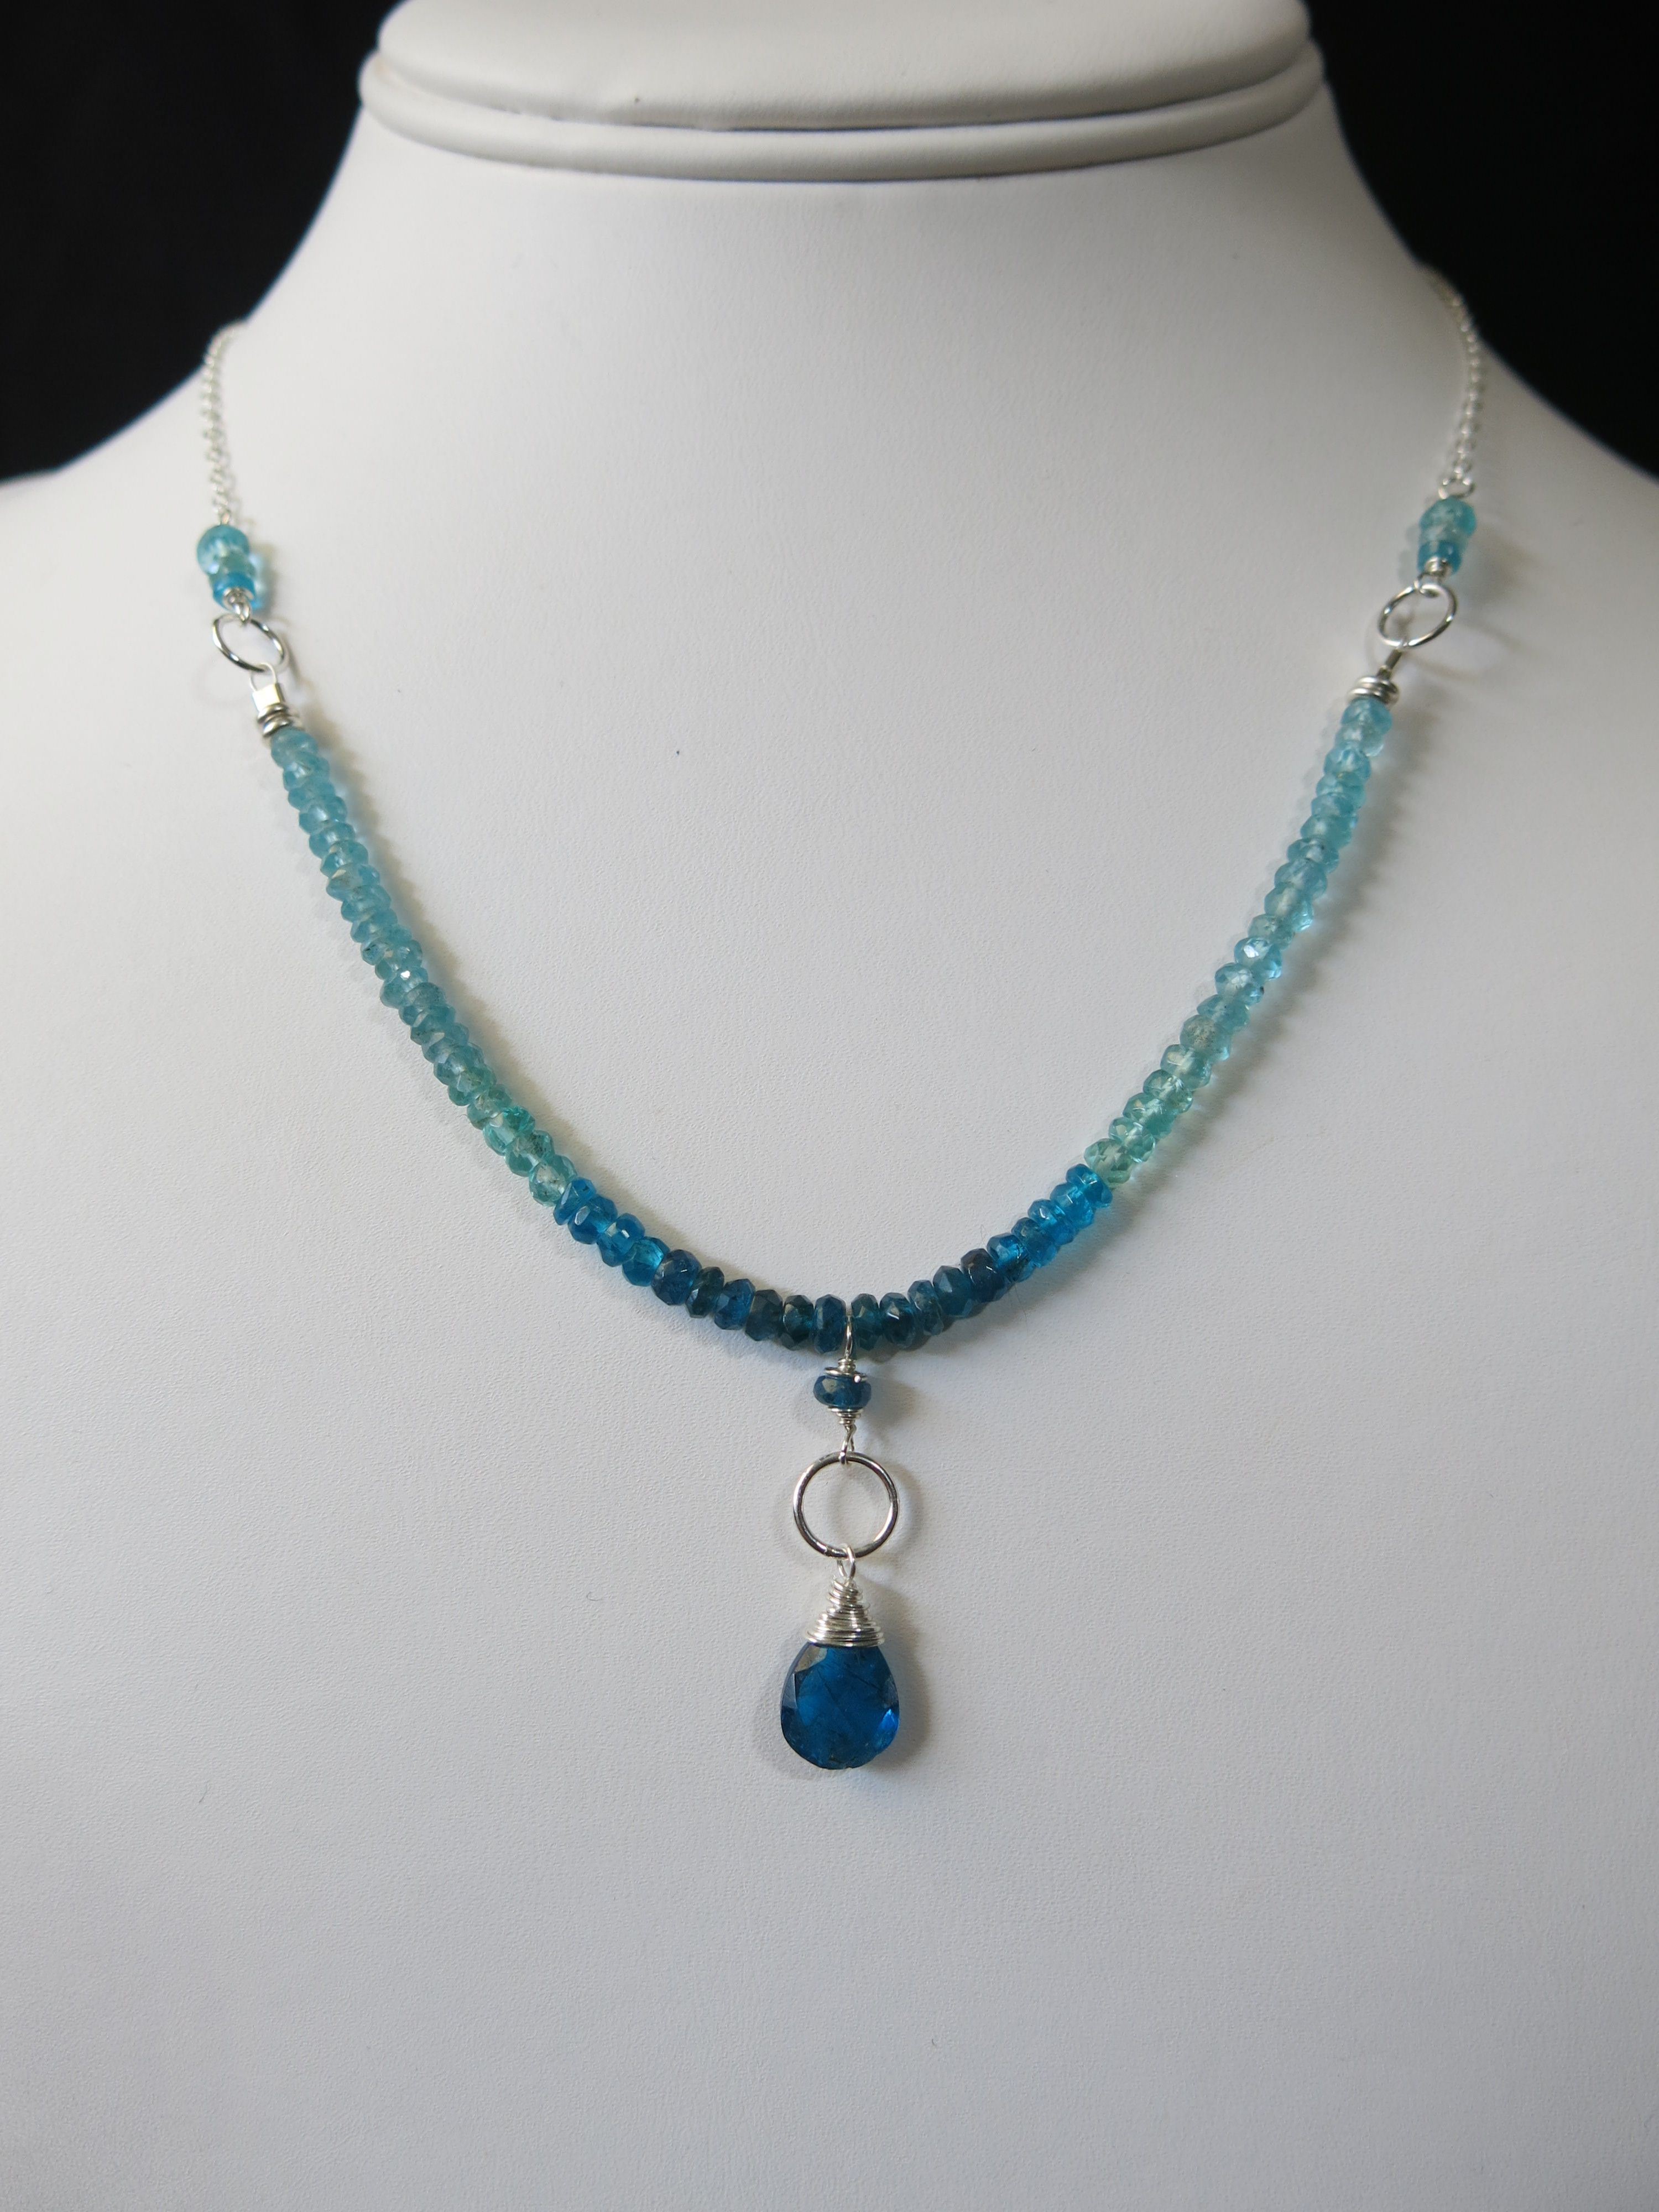 Blue Apatite Necklace.  Bright Blue Apatite briolette wrapped in sterling silver surrounded by different shades of blue Apatite www.sarahwalkerjewelry.com